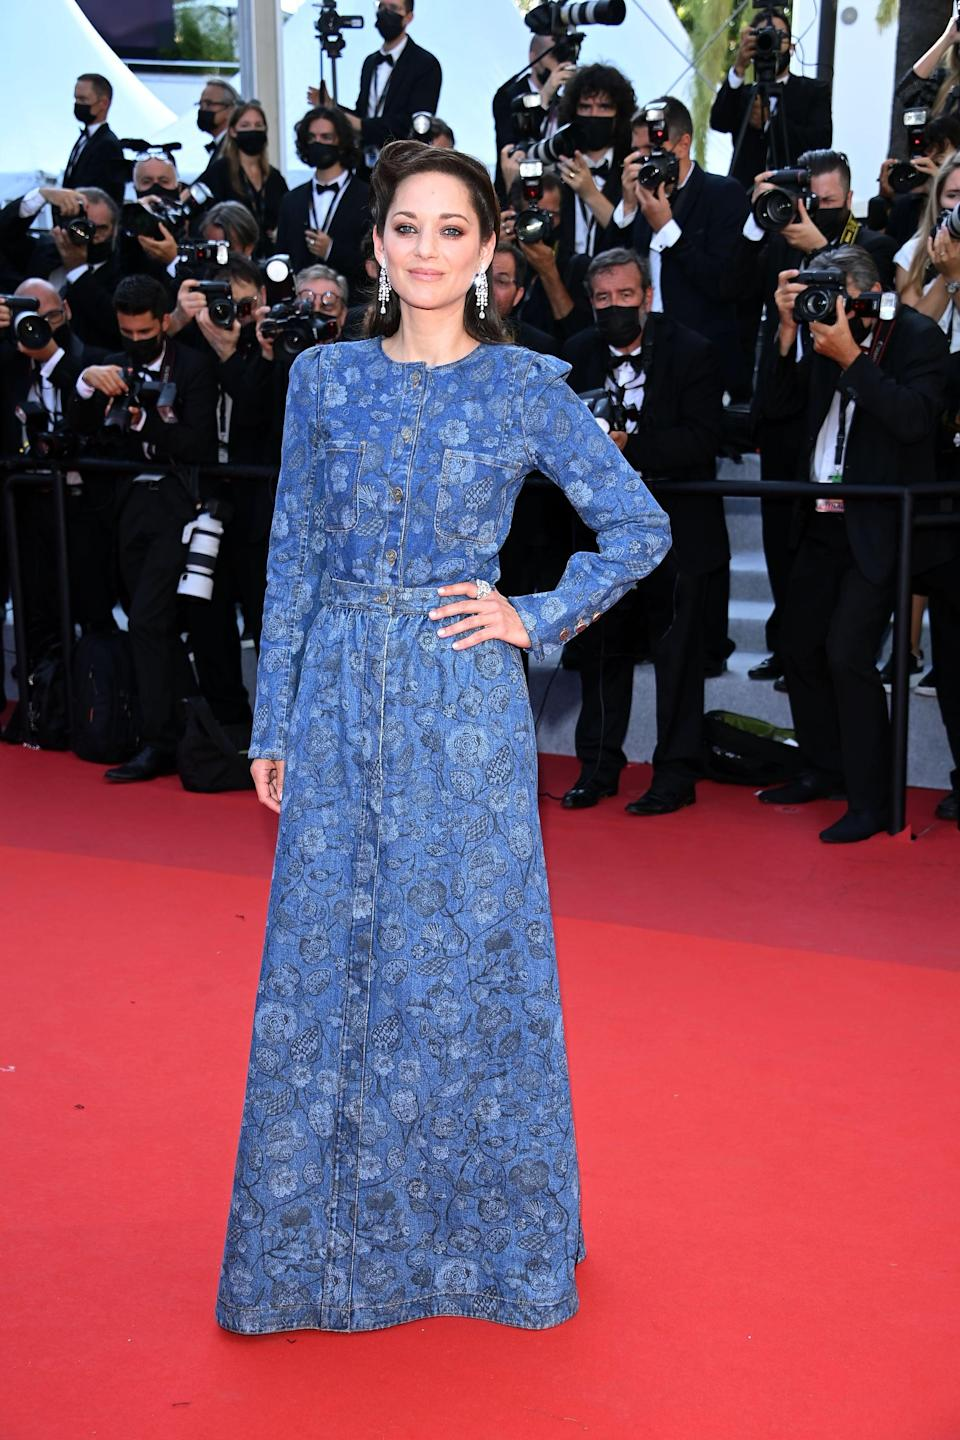 <p>Wearing a blue floral Chanel dress.</p>